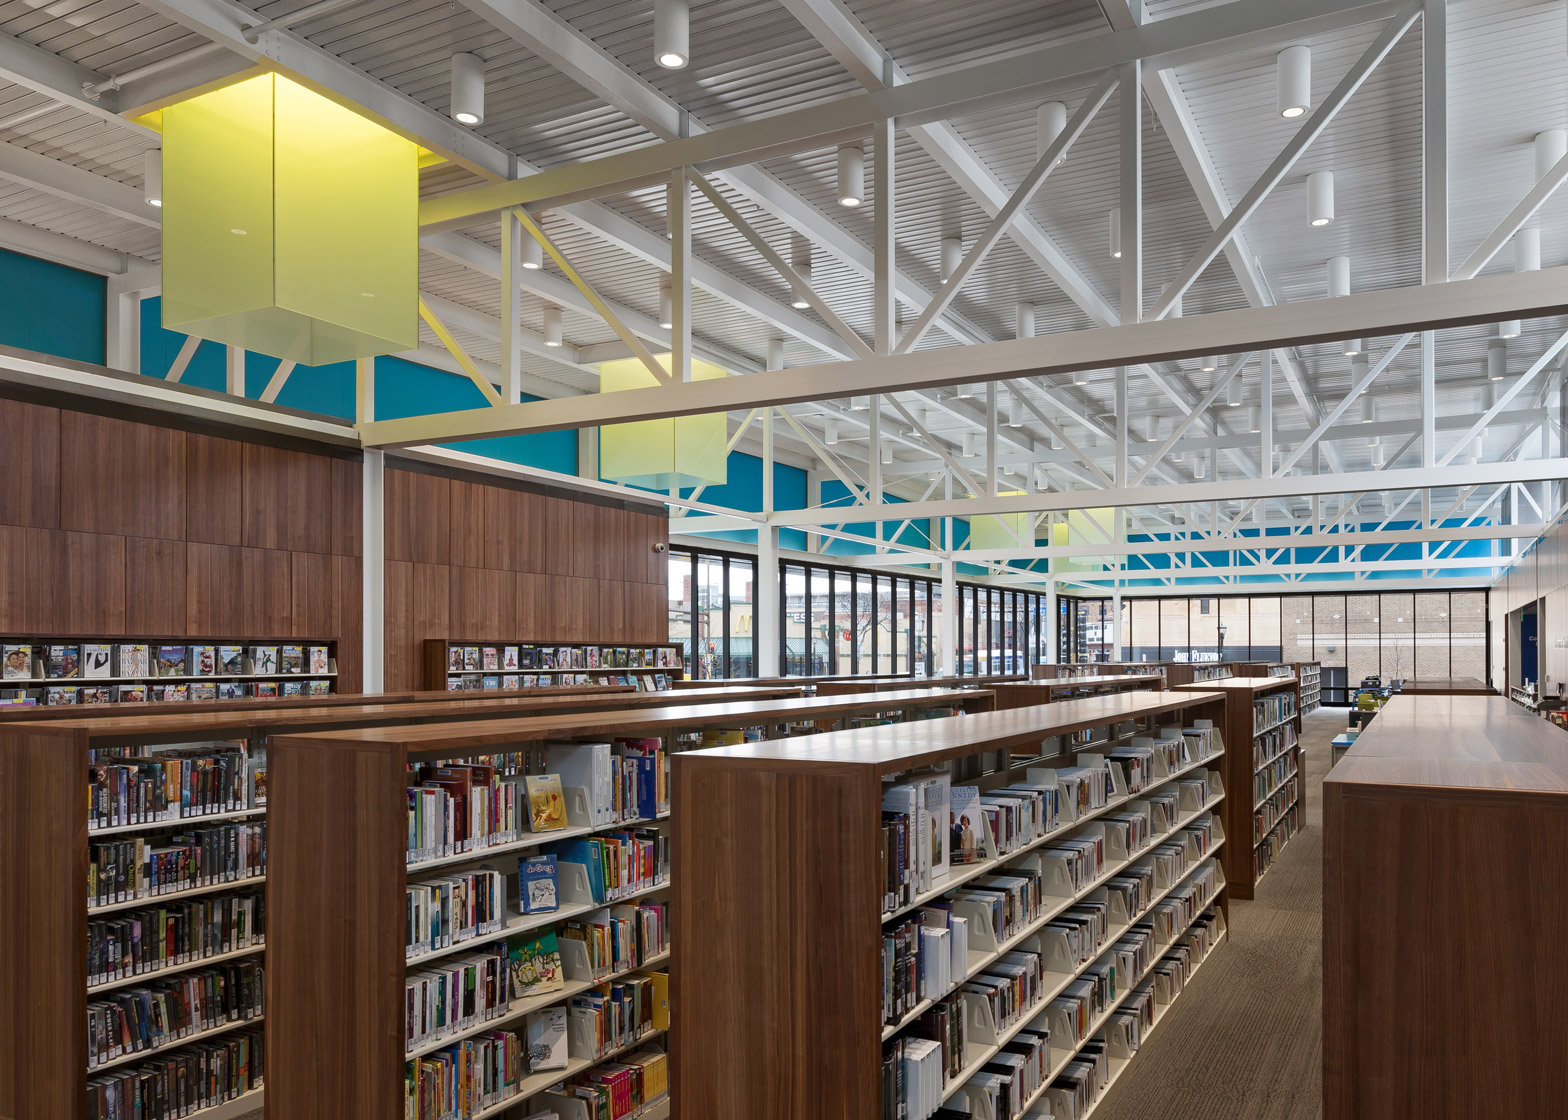 Hennepin County Walker Library; Minneapolis by VJAA winner of the 2016 AIA library awards